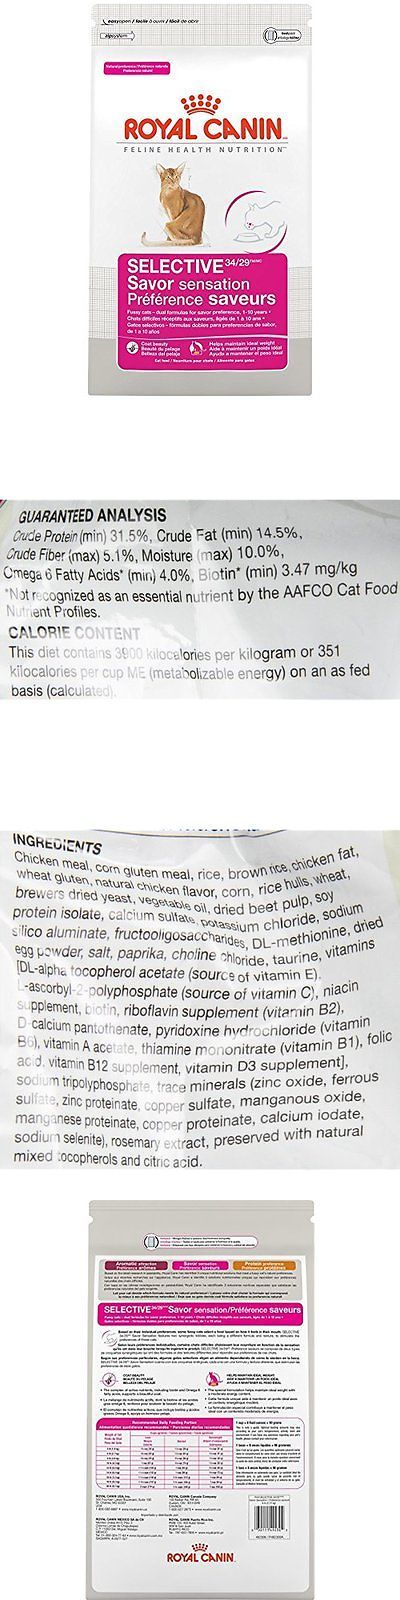 Cat Food 63073: Sale Royal Canin Feline Health Nutrition Savor Selective Dry Adult Cat Food -> BUY IT NOW ONLY: $30.75 on eBay!